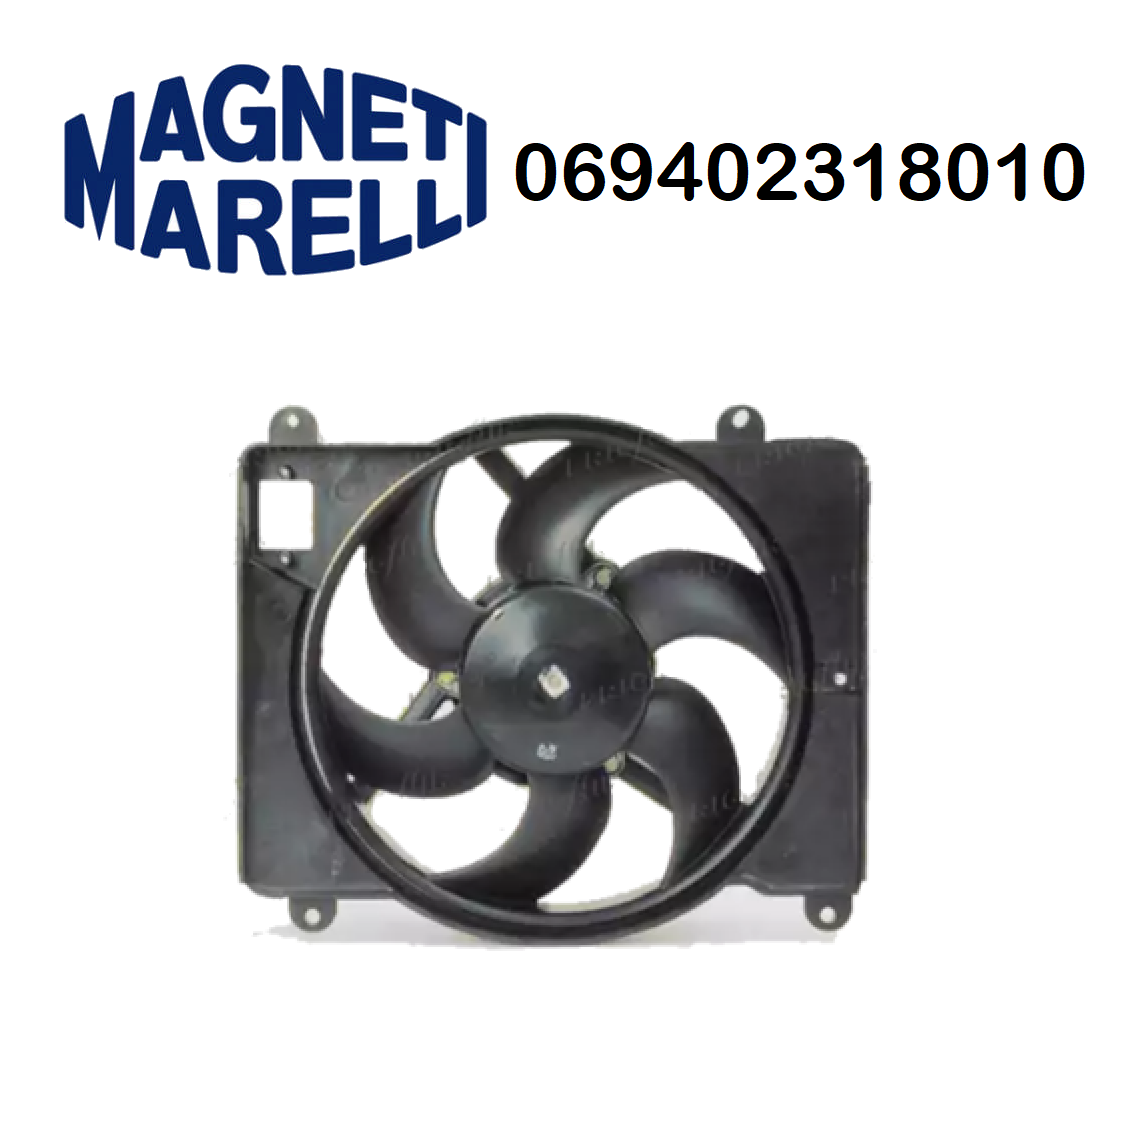 FIAT PUNTO ENGINE COOLING FAN - LANCIA Y MARELLI FOR 46406189